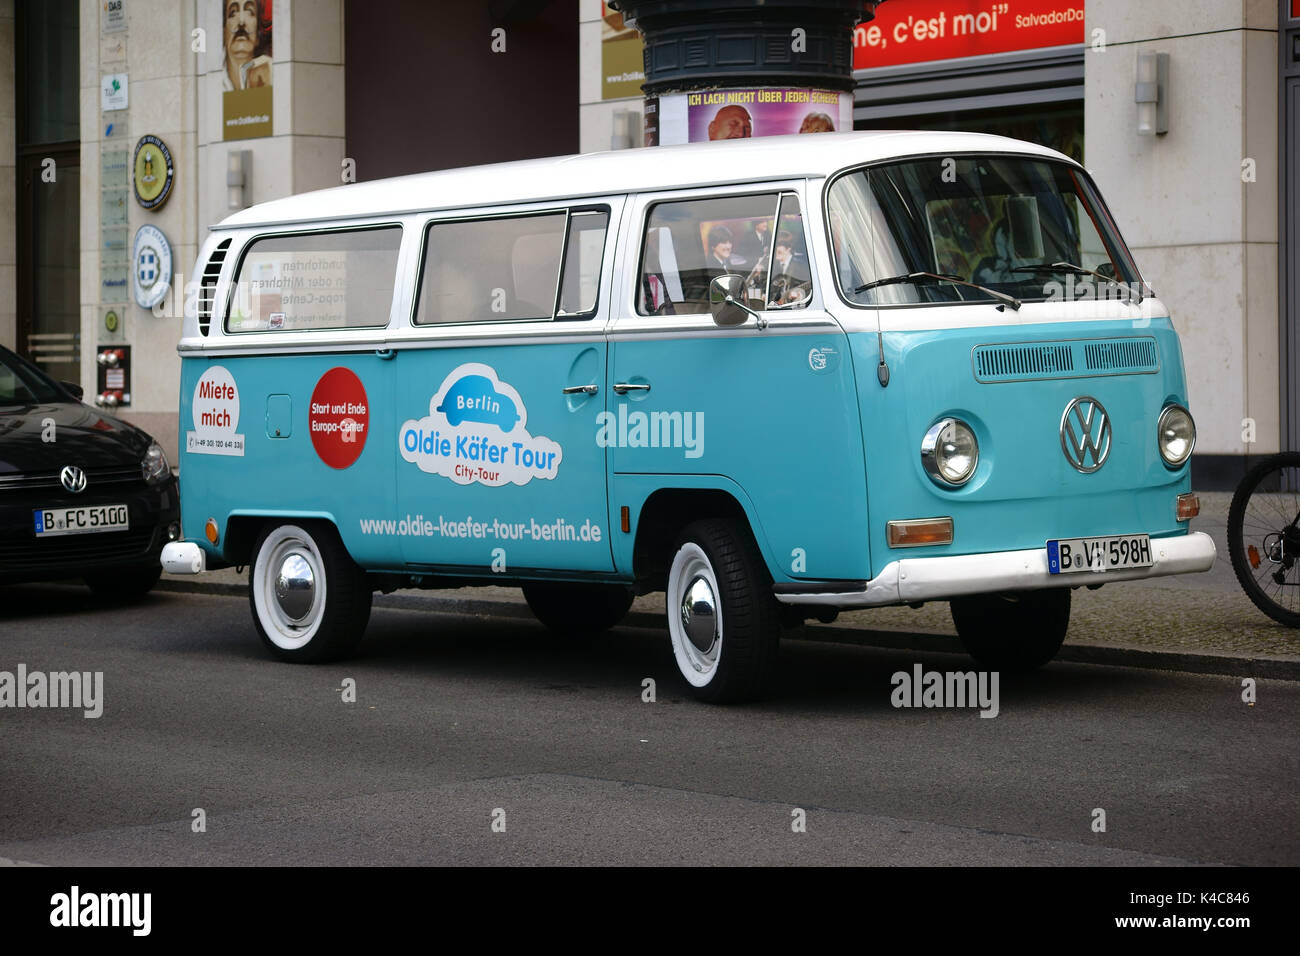 Old Vw Bus - Stock Image